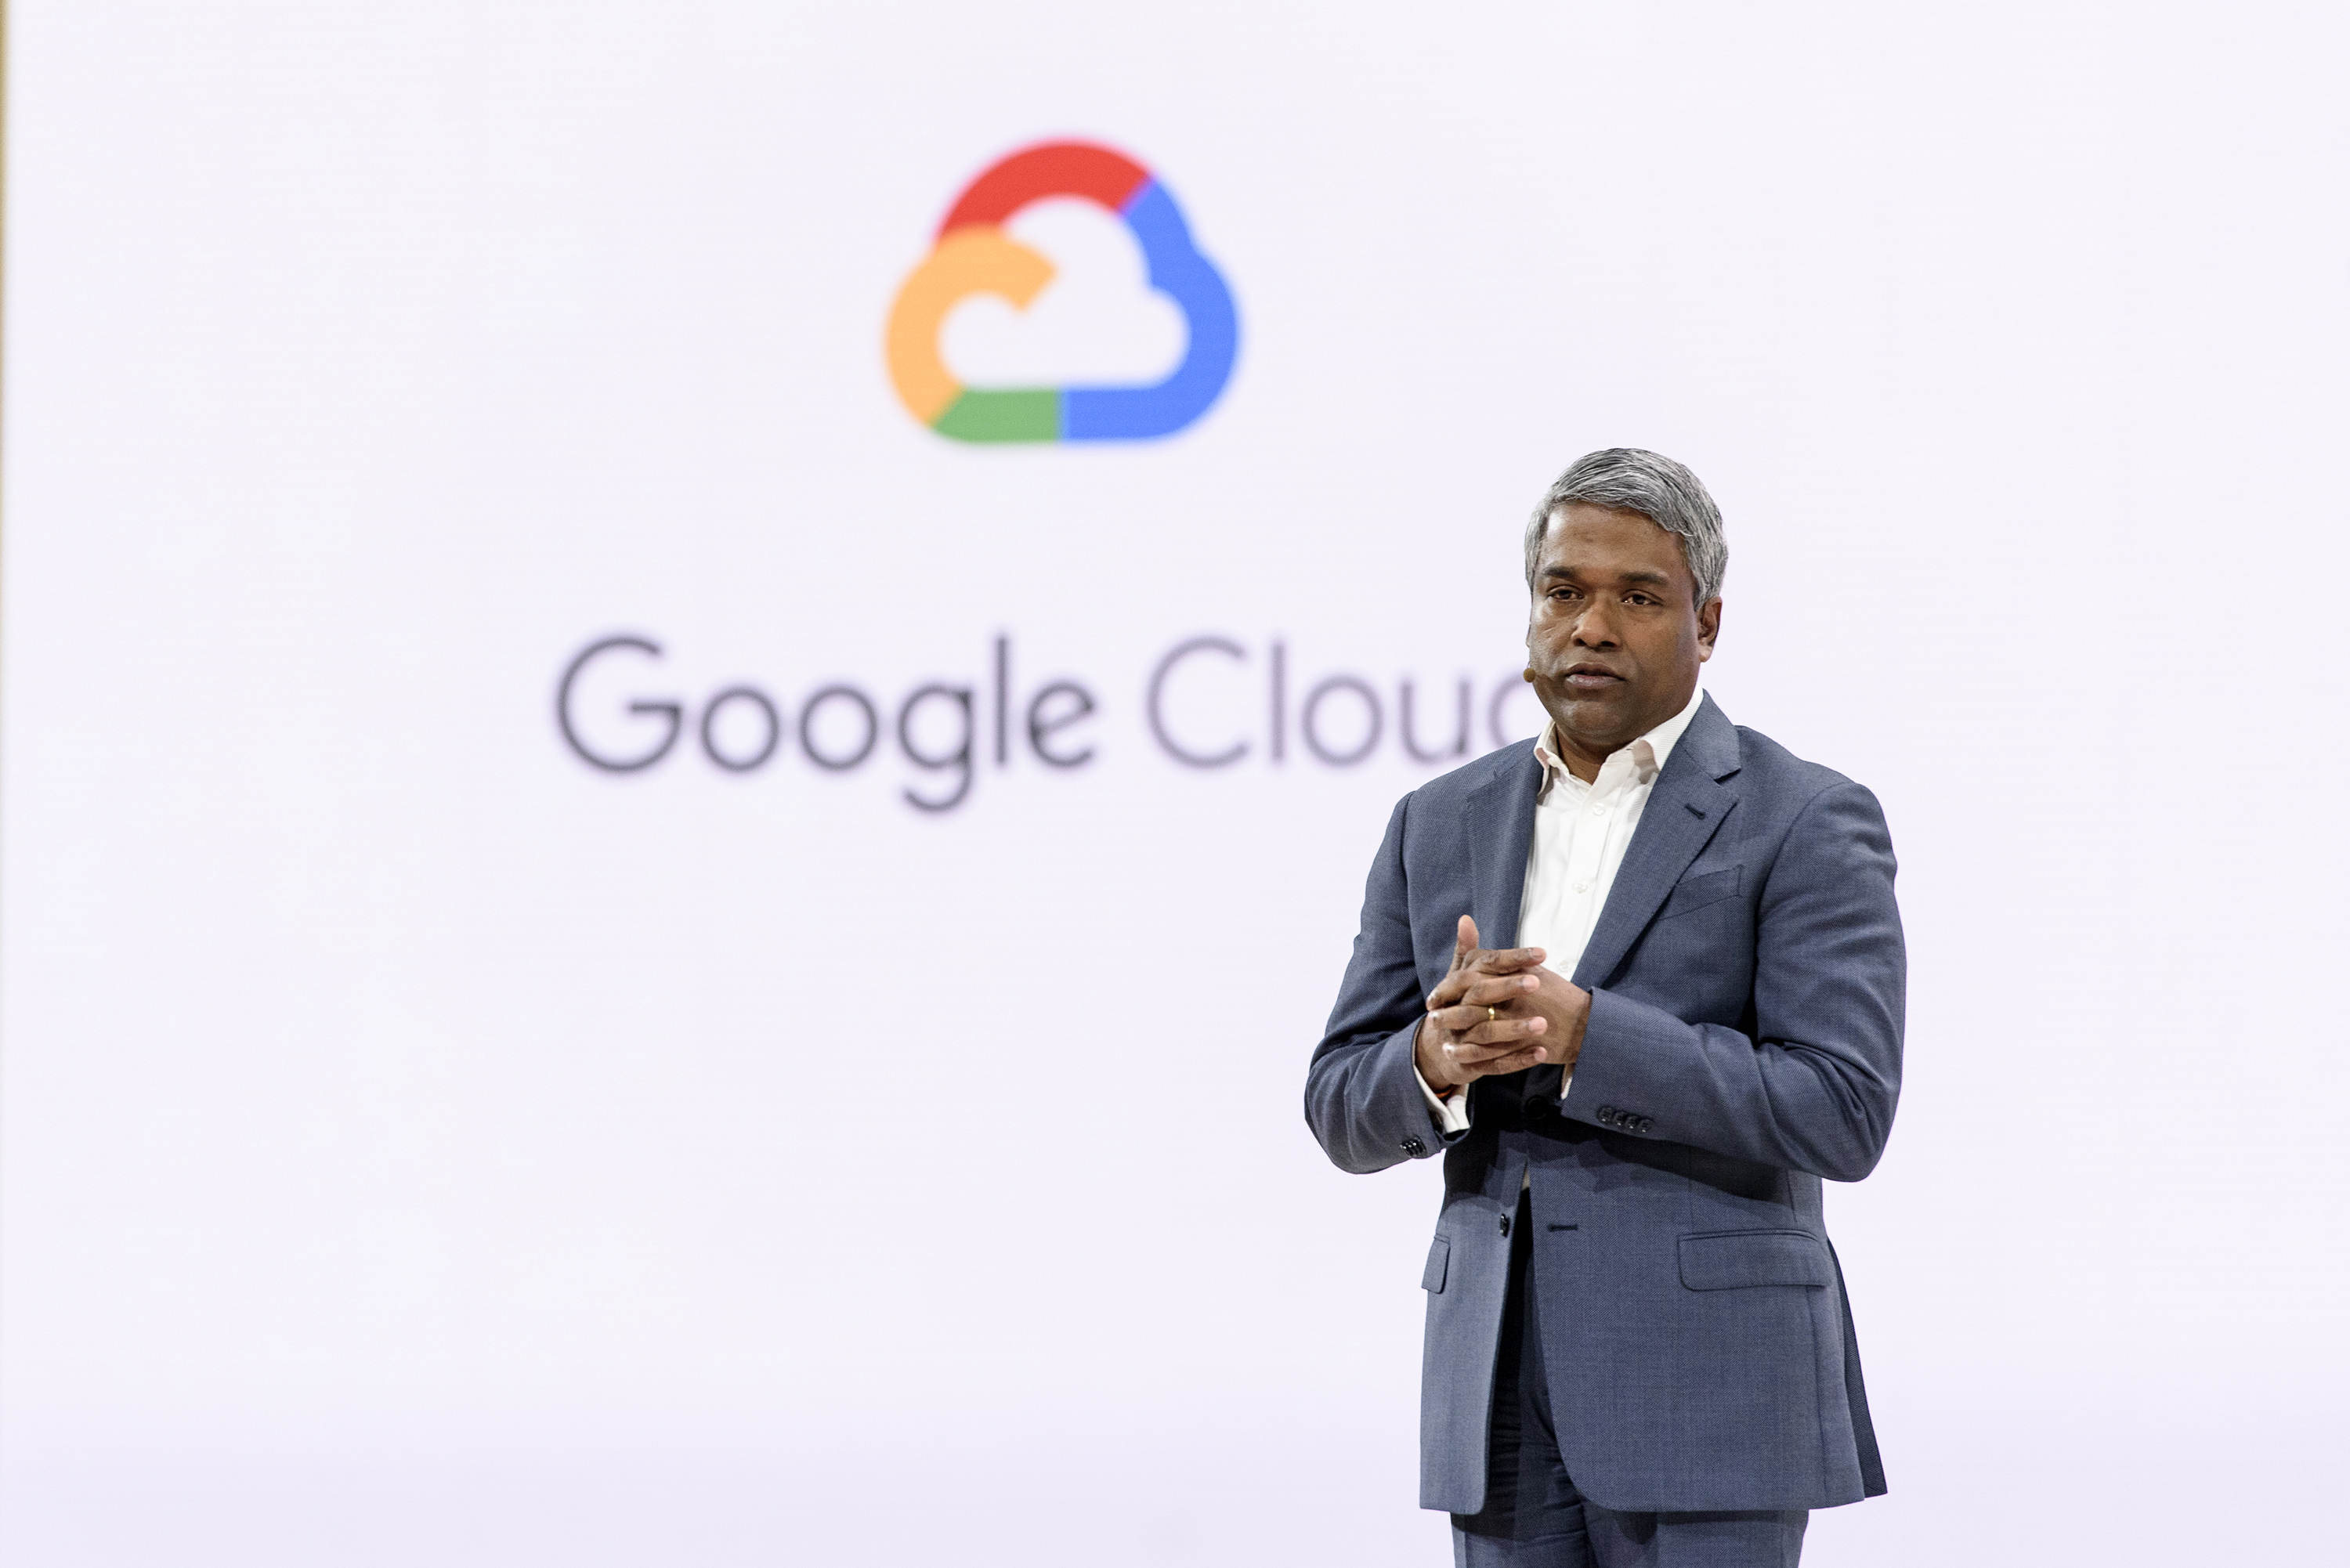 Key Speakers At Google Cloud Next '19 Conference